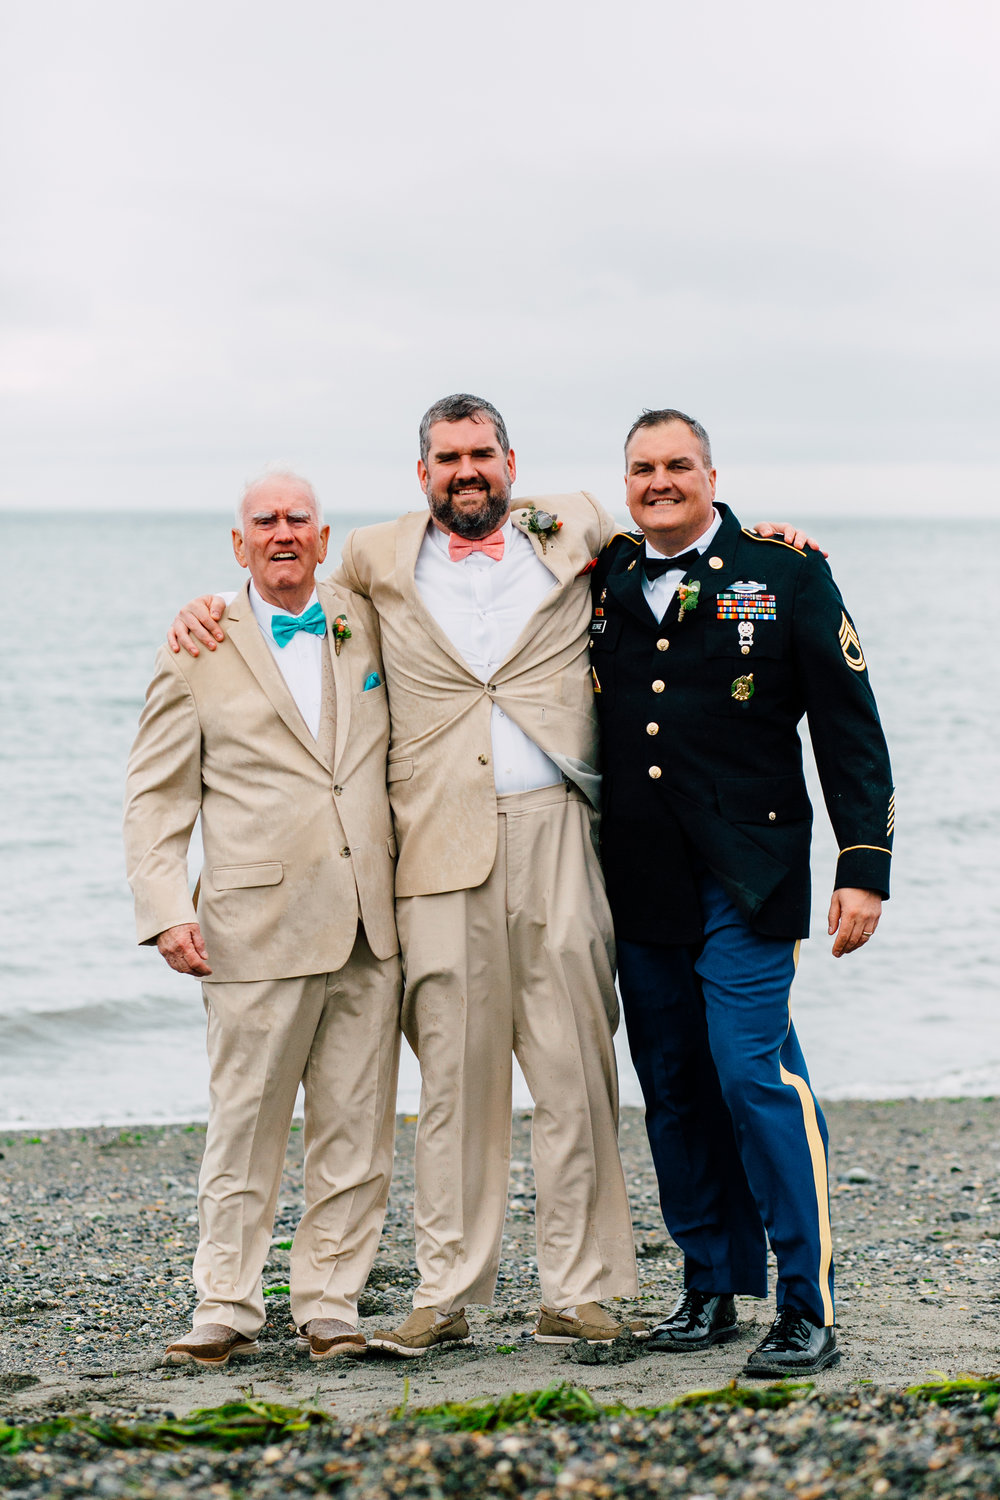 044-bellingham-wedding-photographer-beach-katheryn-moran-elisa-phillip.jpg